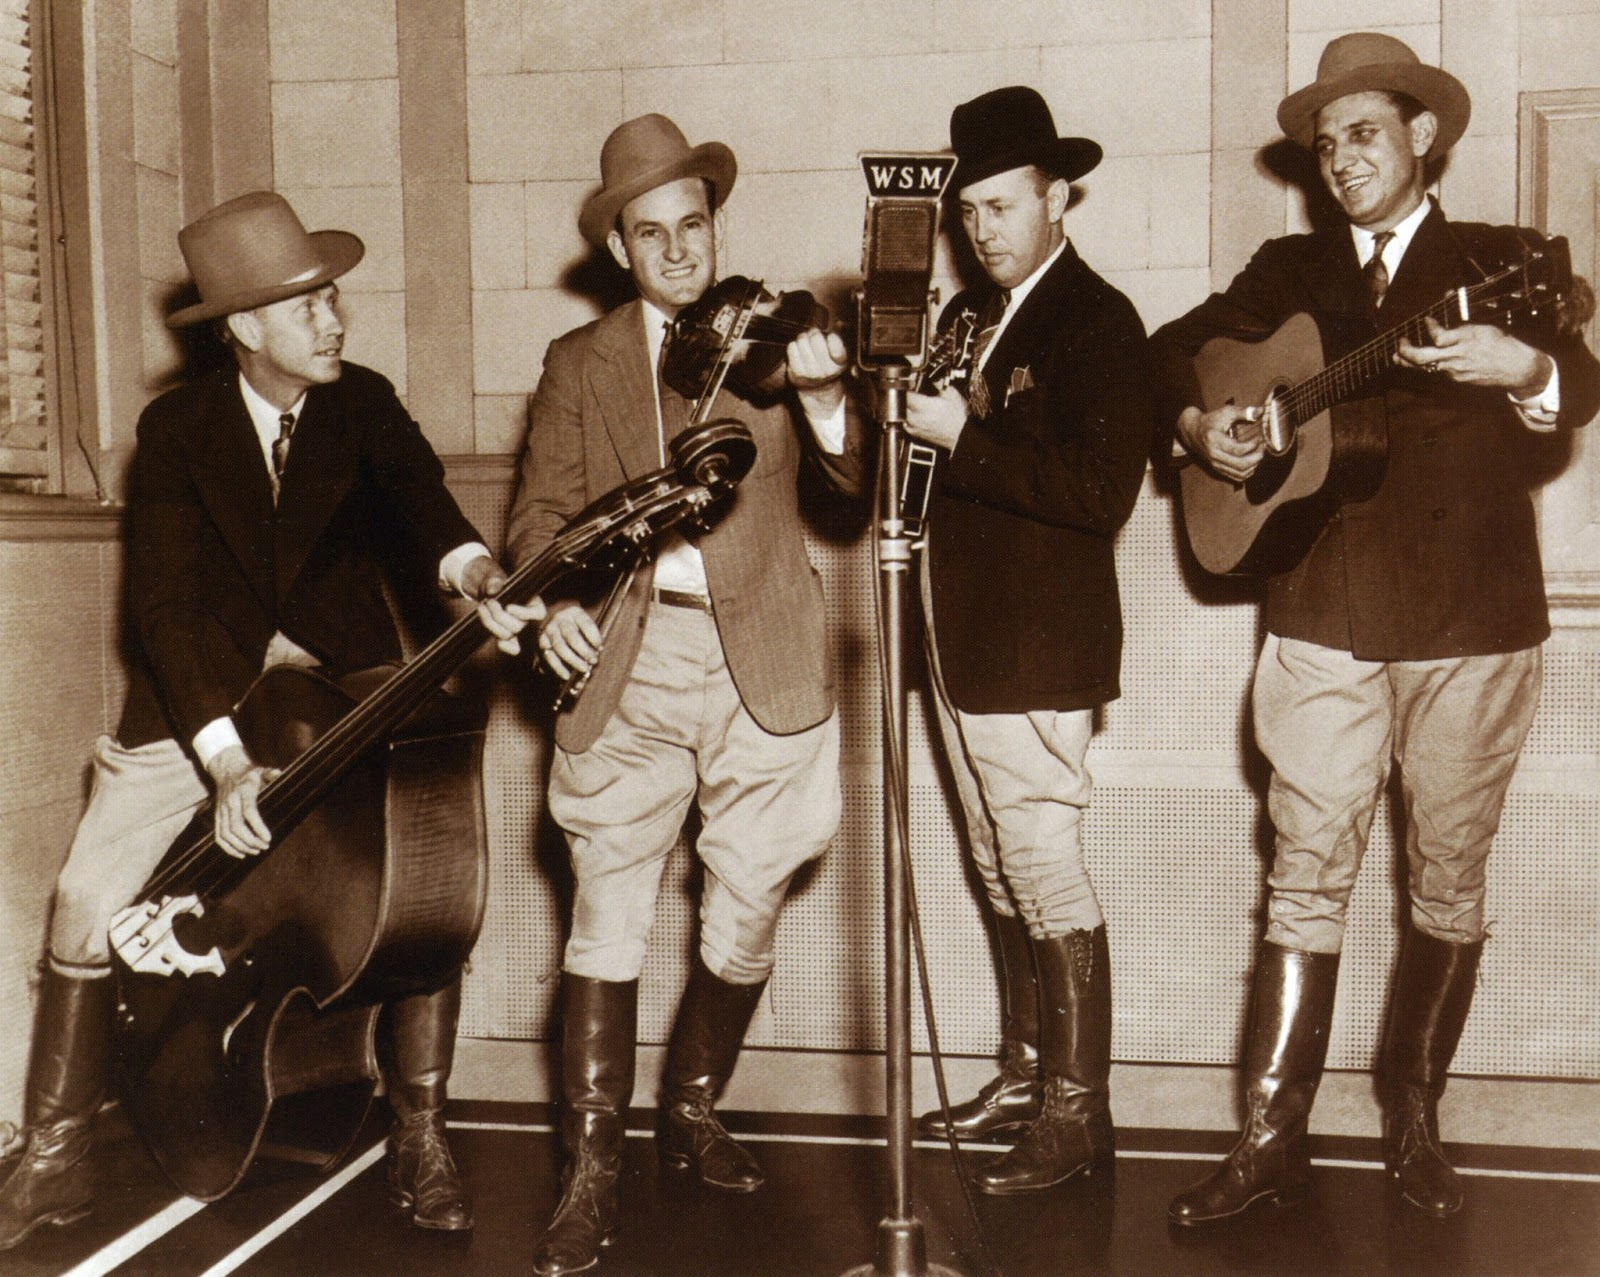 Caption: Bill Monroe (second from right) and His Blue Grass Boys were early Grand Ole Opry stars who refashioned mountain music into the new genre called bluegrass. , Credit: nativeground.com